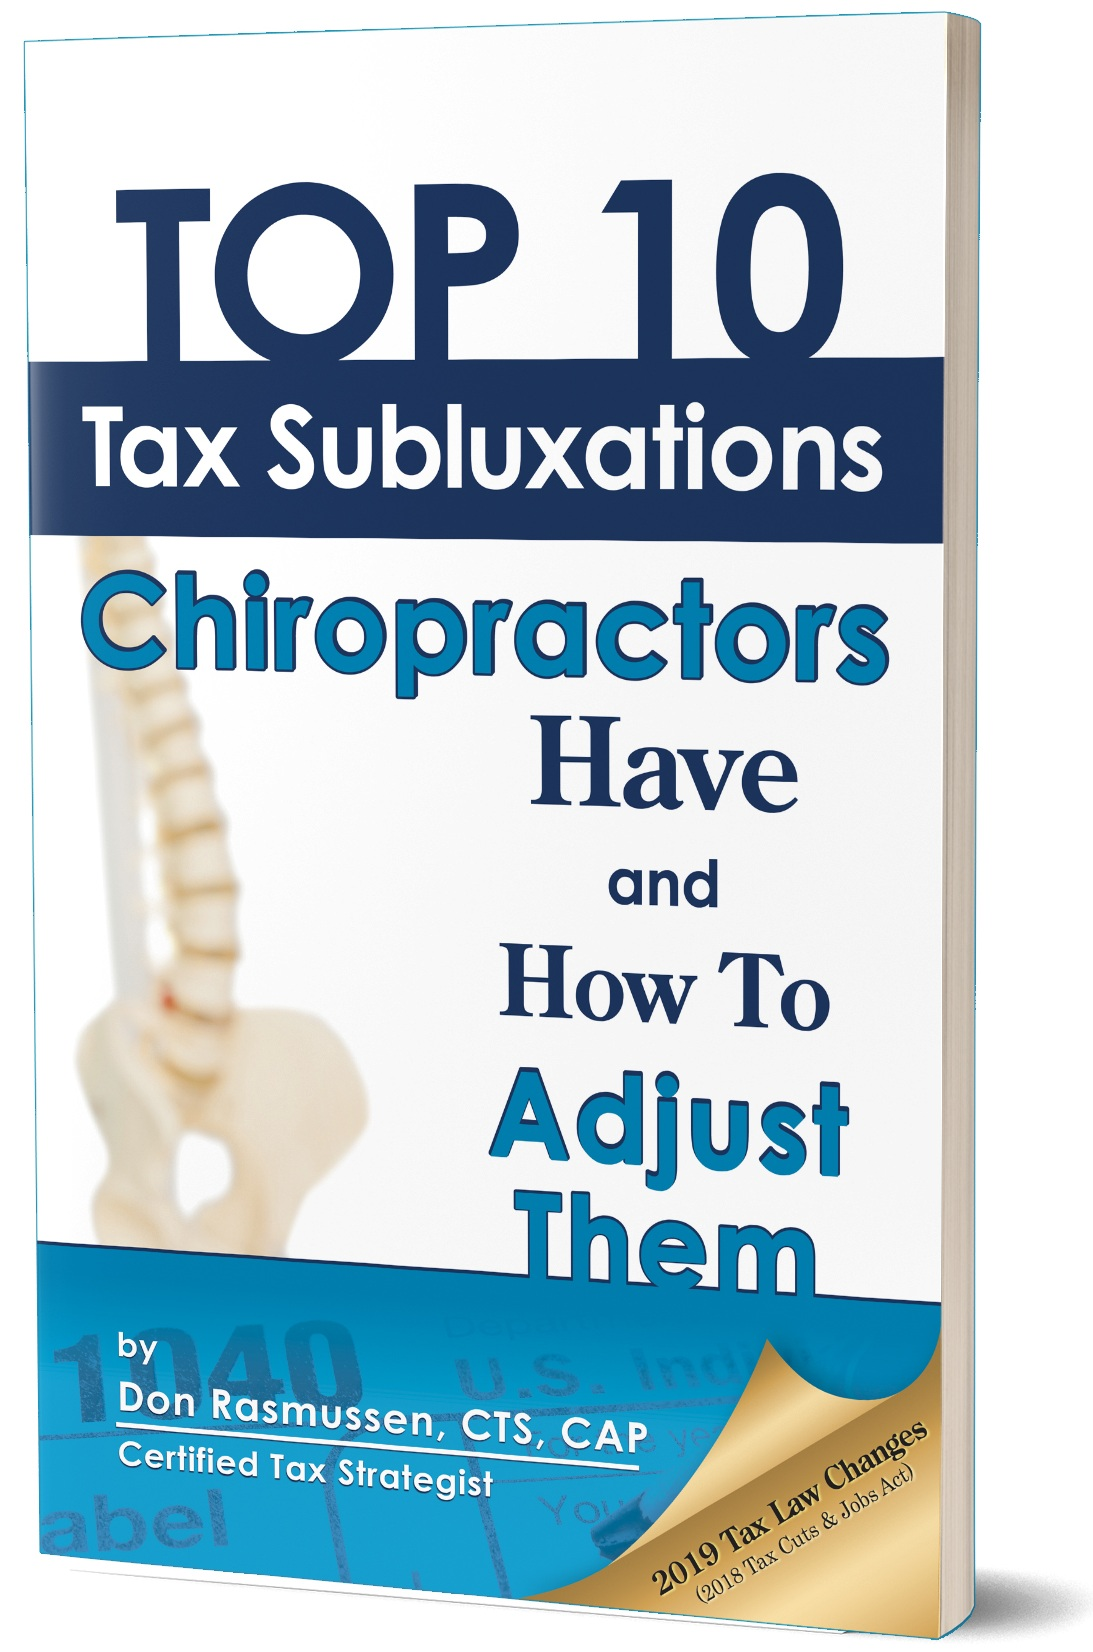 Chiropractors, tired of overpaying on your taxes? - Get your FREE copy of Top 10 Tax Subluxations Chiropractors Have and How to Adjust Them